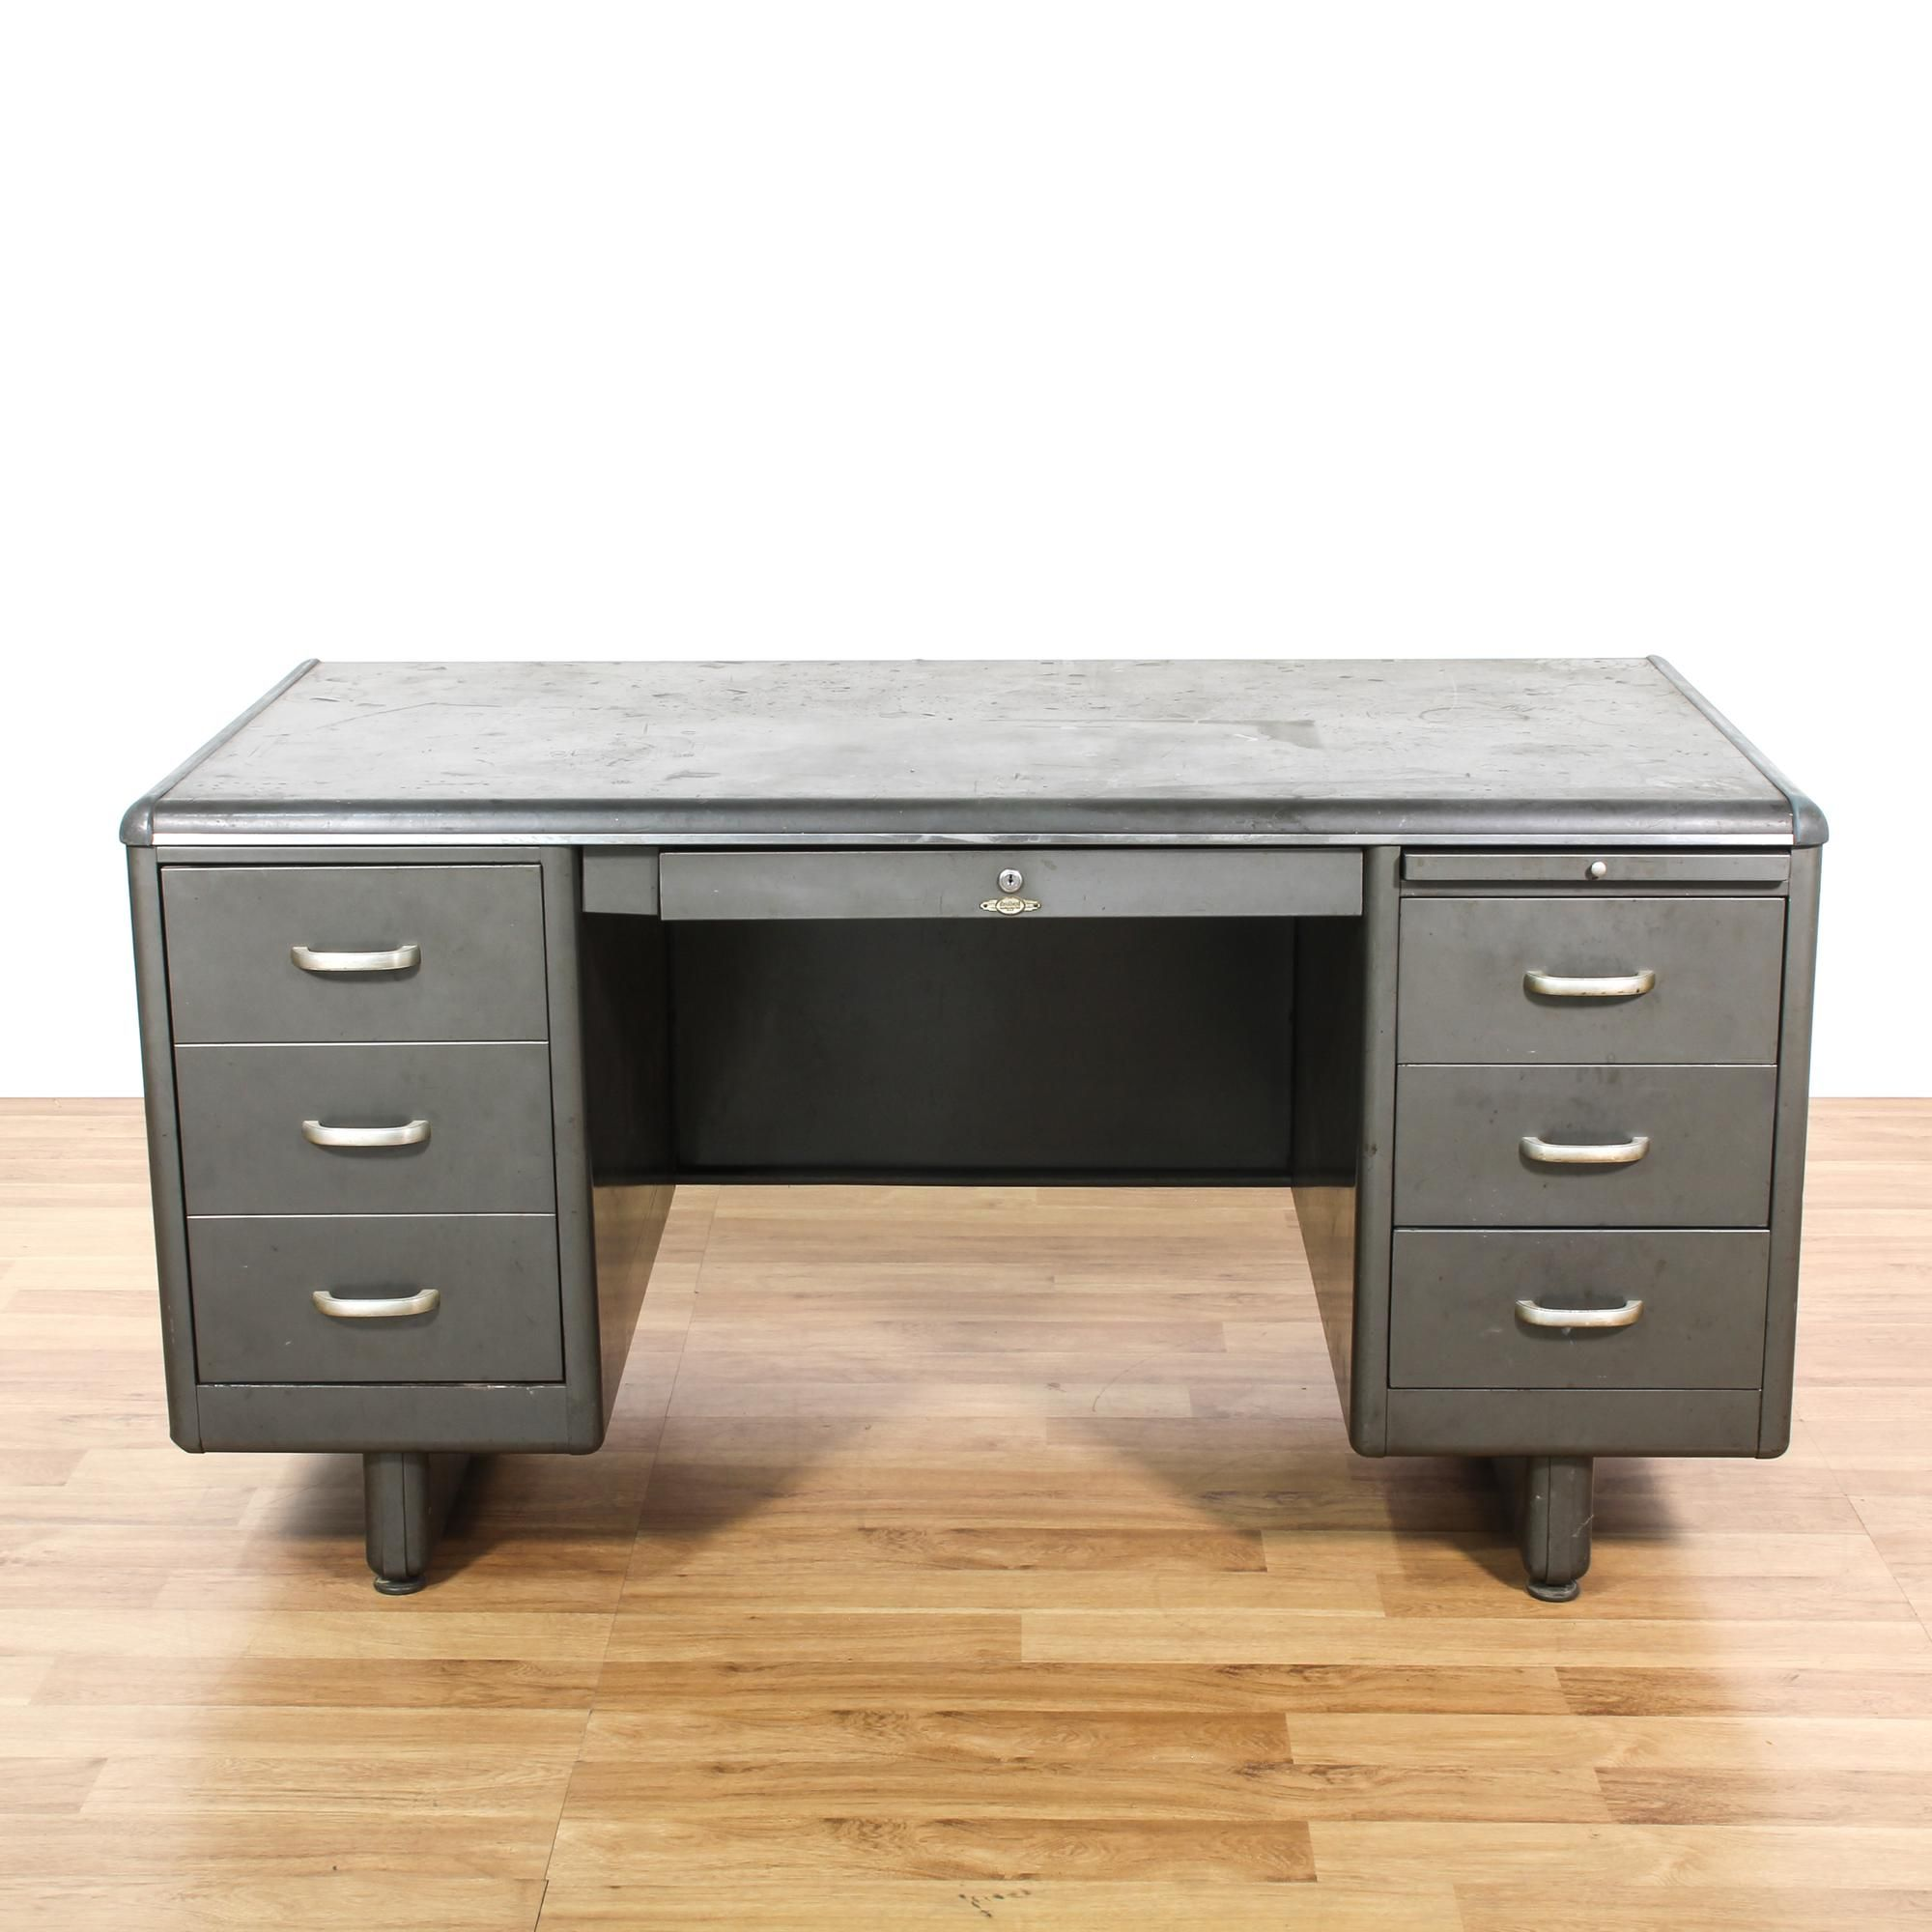 distressed industrial furniture. This Industrial Tanker Desk Is Featured In A Durable Metal With Distressed Charcoal Gray Finish Furniture